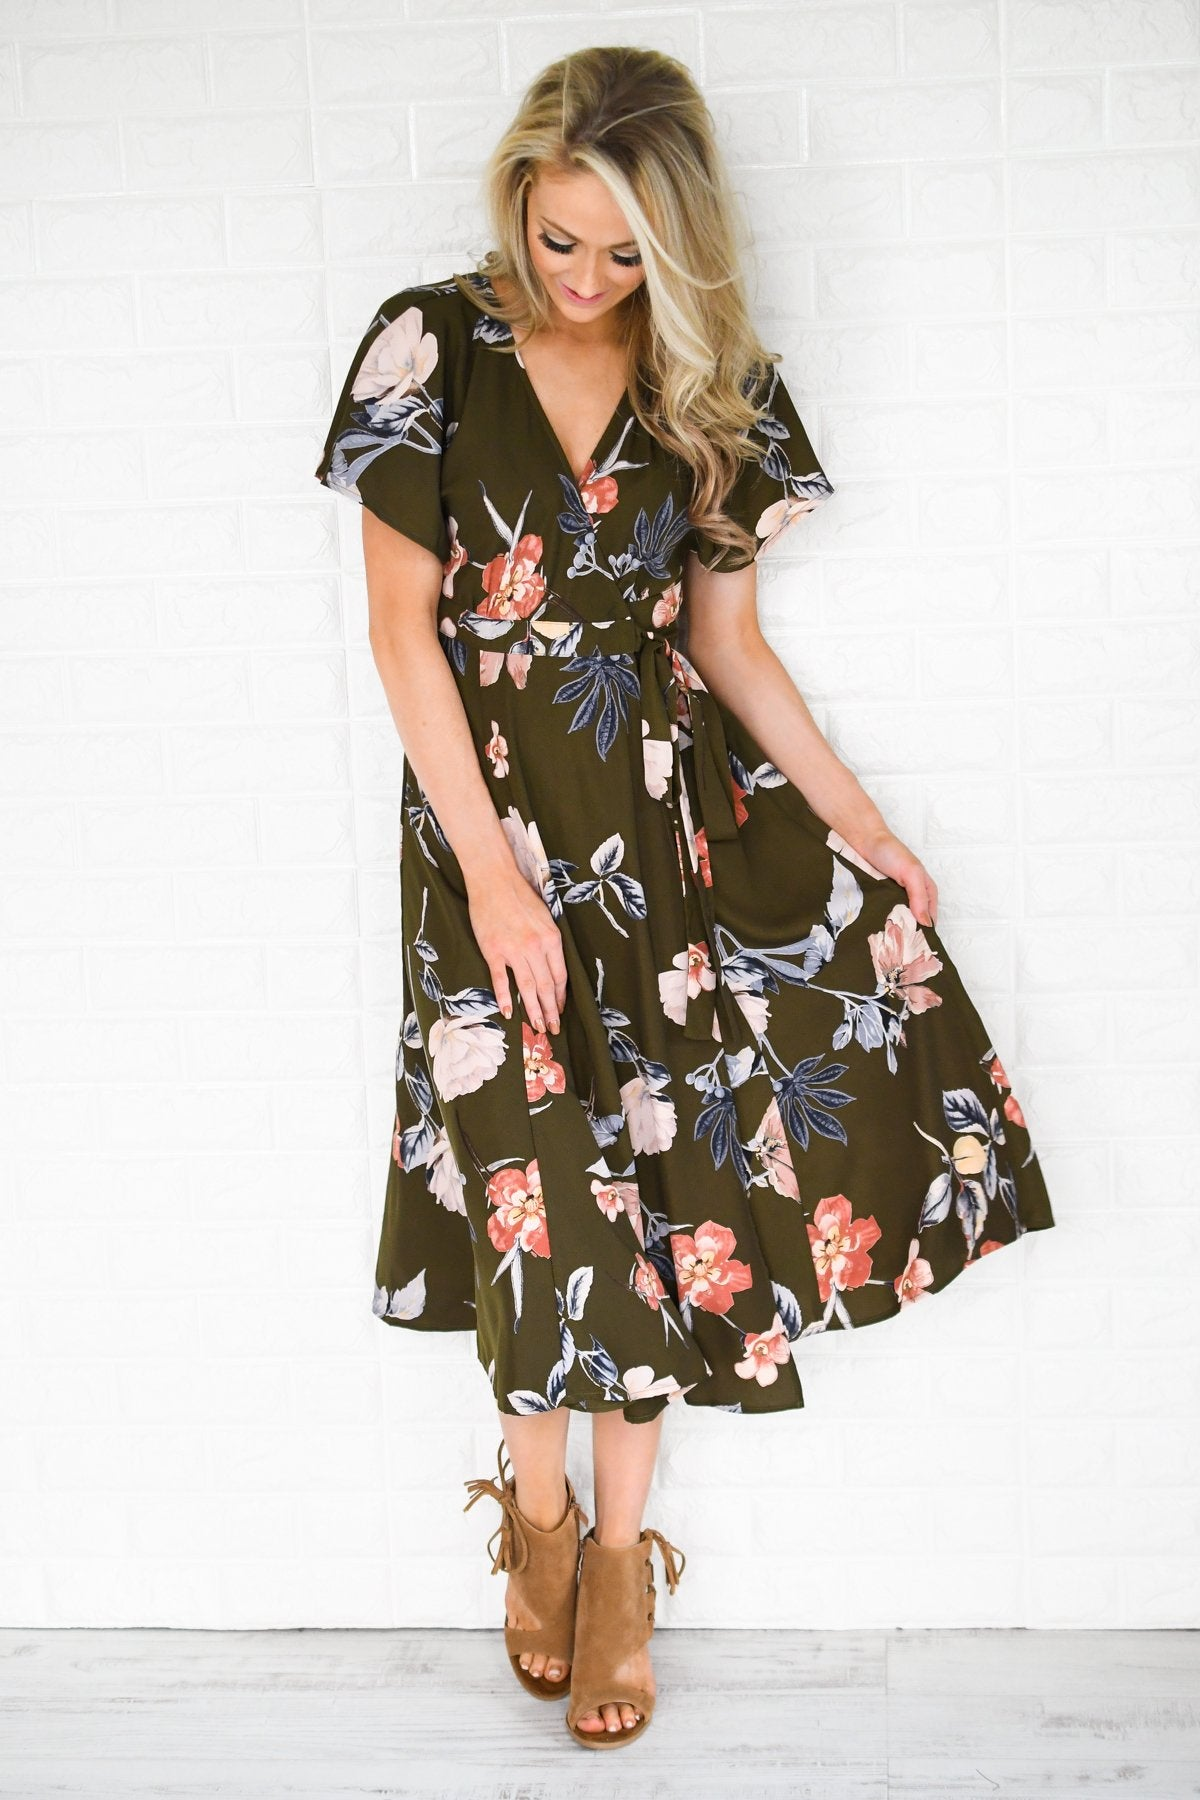 Flaunt it Babe Olive Floral Wrap Dress